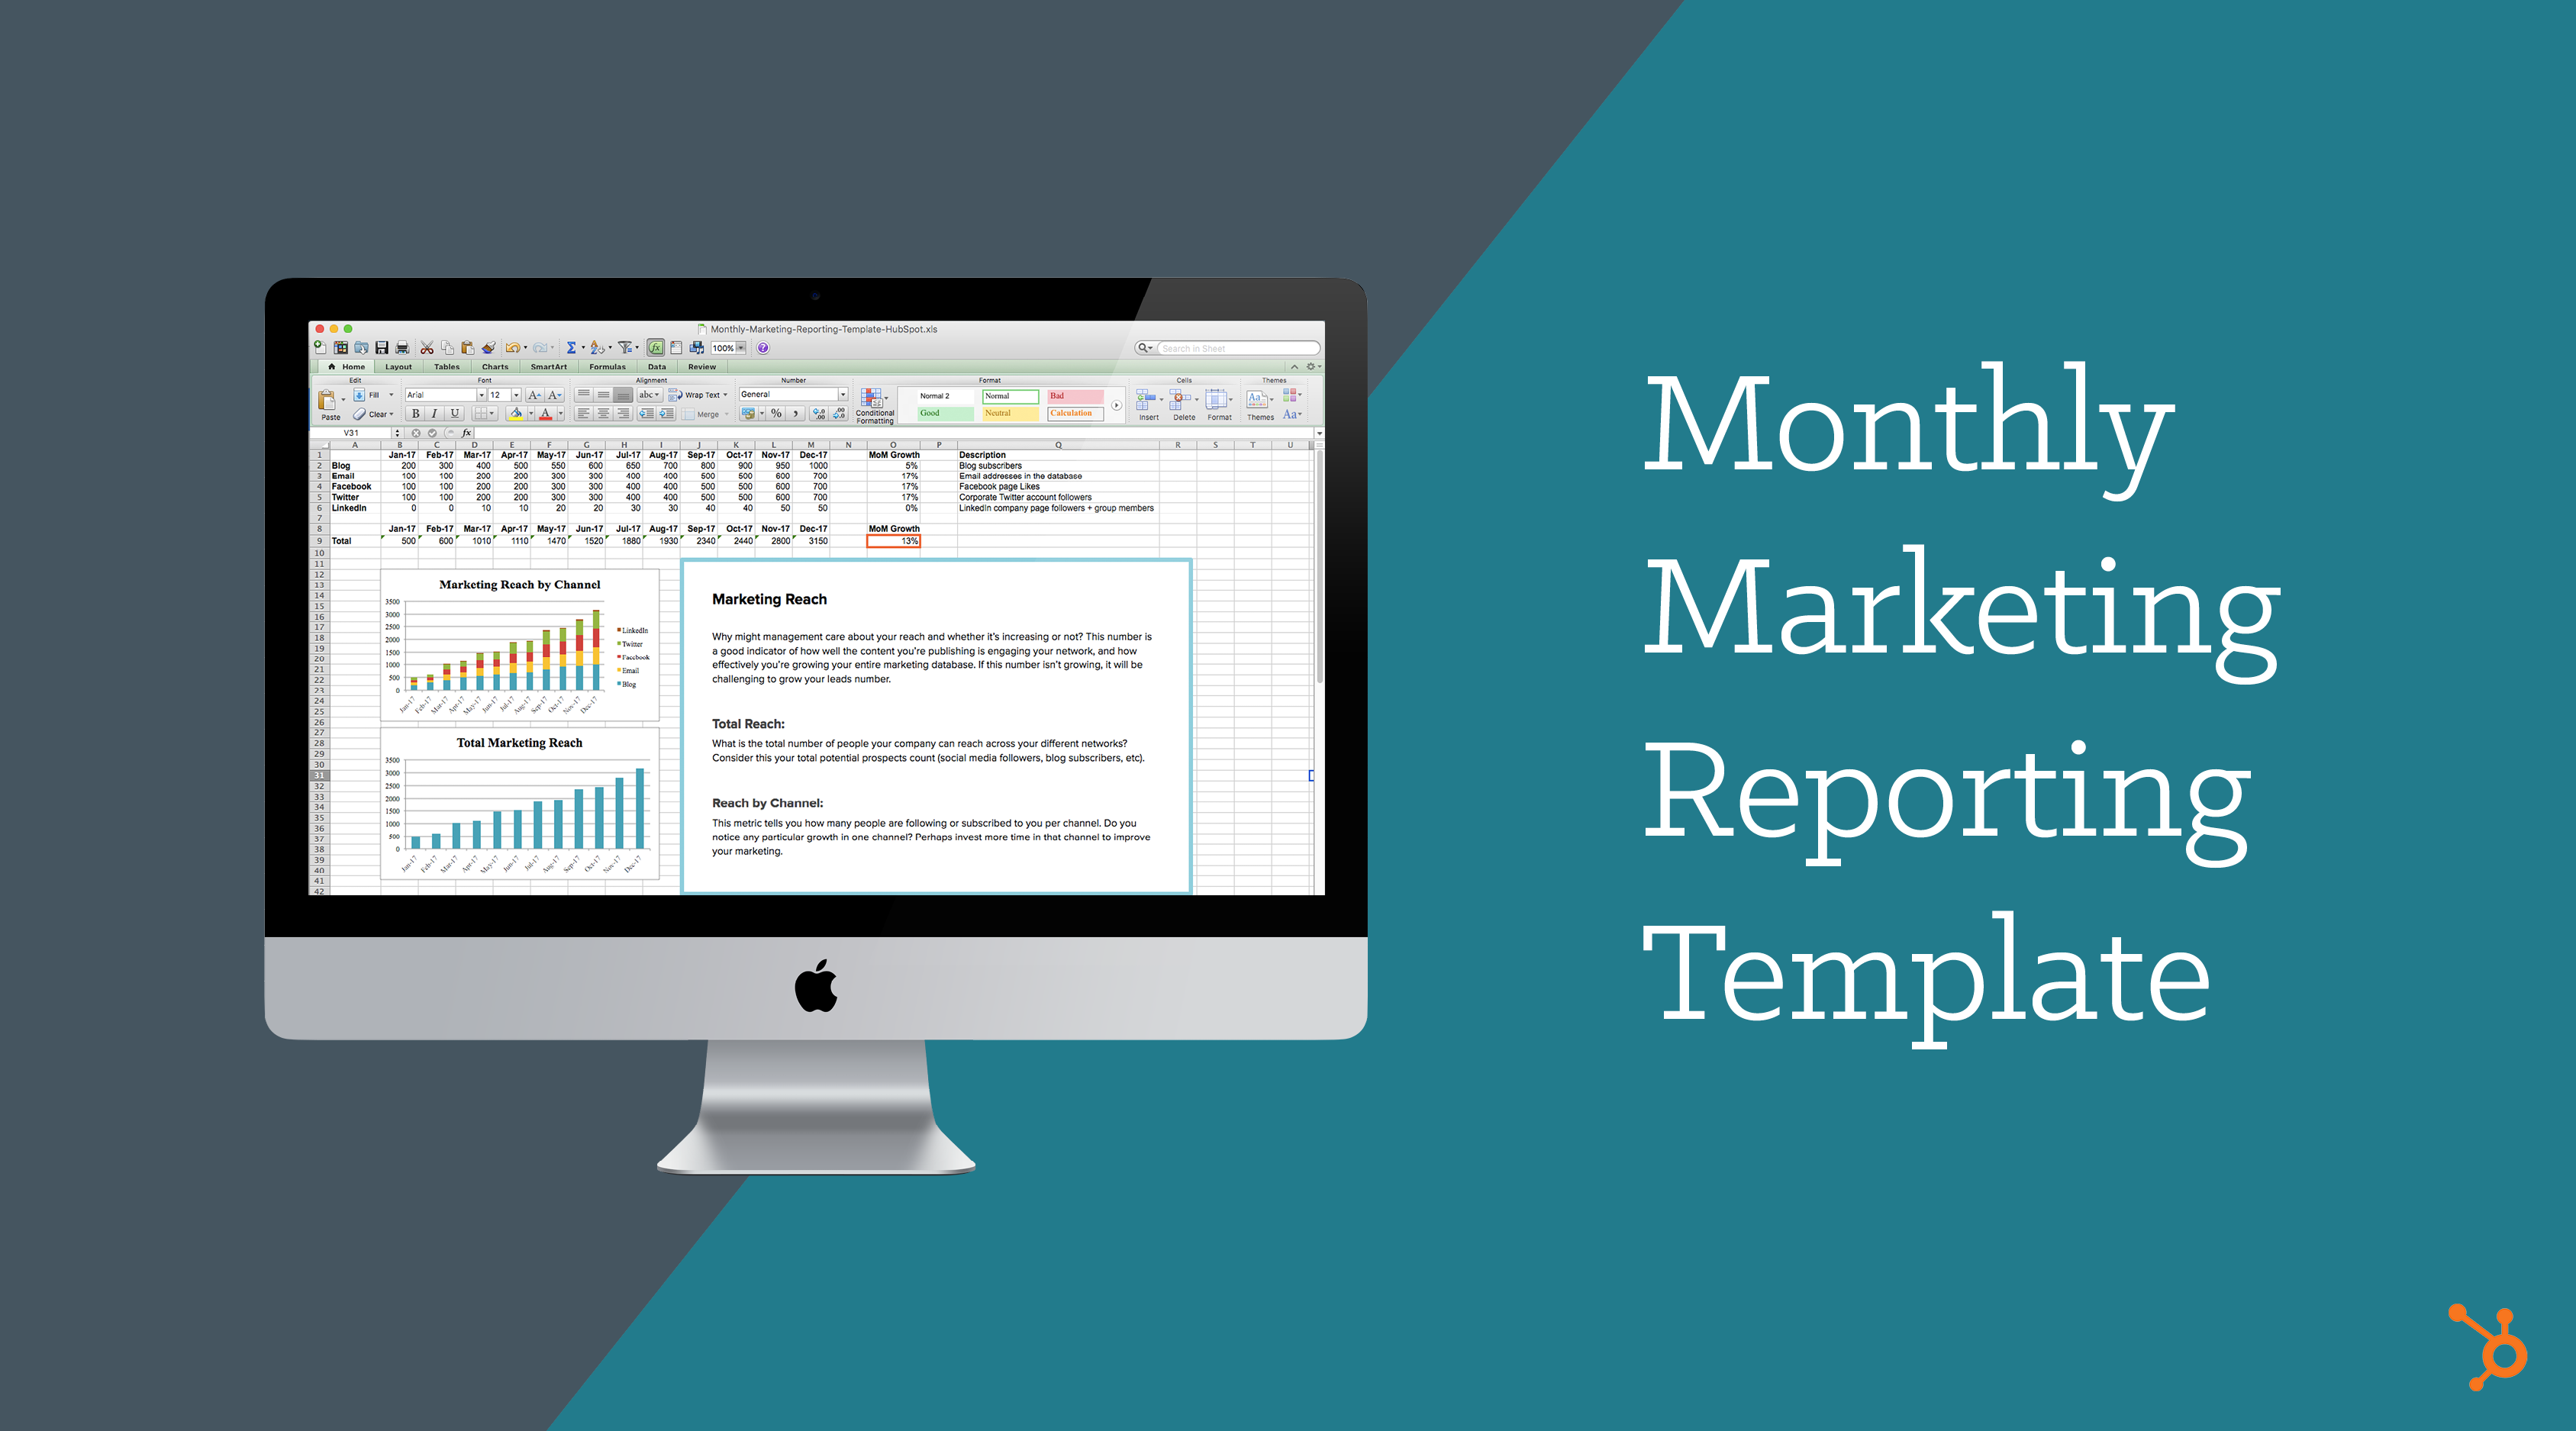 Monthly Marketing Reporting Template | Free Download